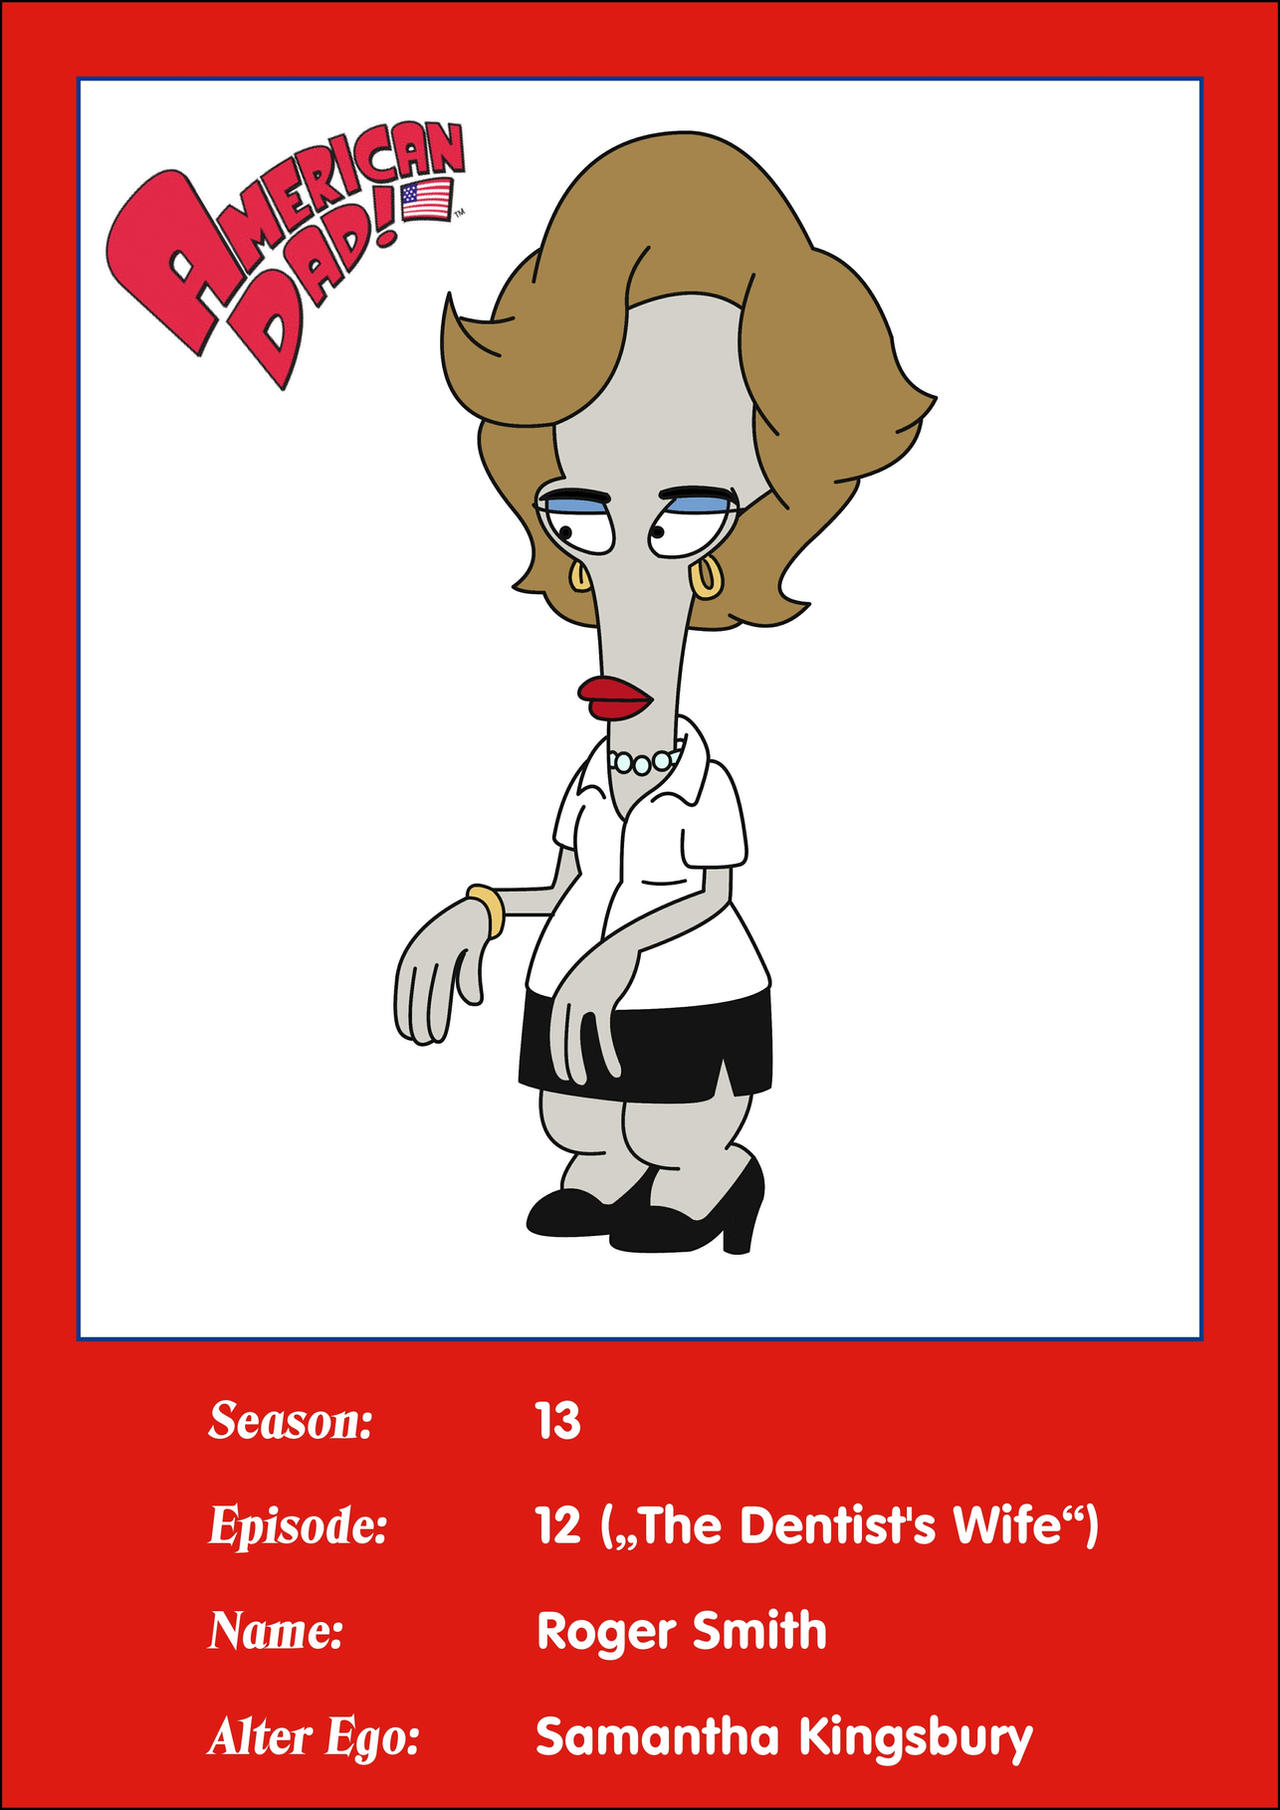 Roger Smith Also Known as Wogir American Dad - Custom ...  Roger Smith American Dad